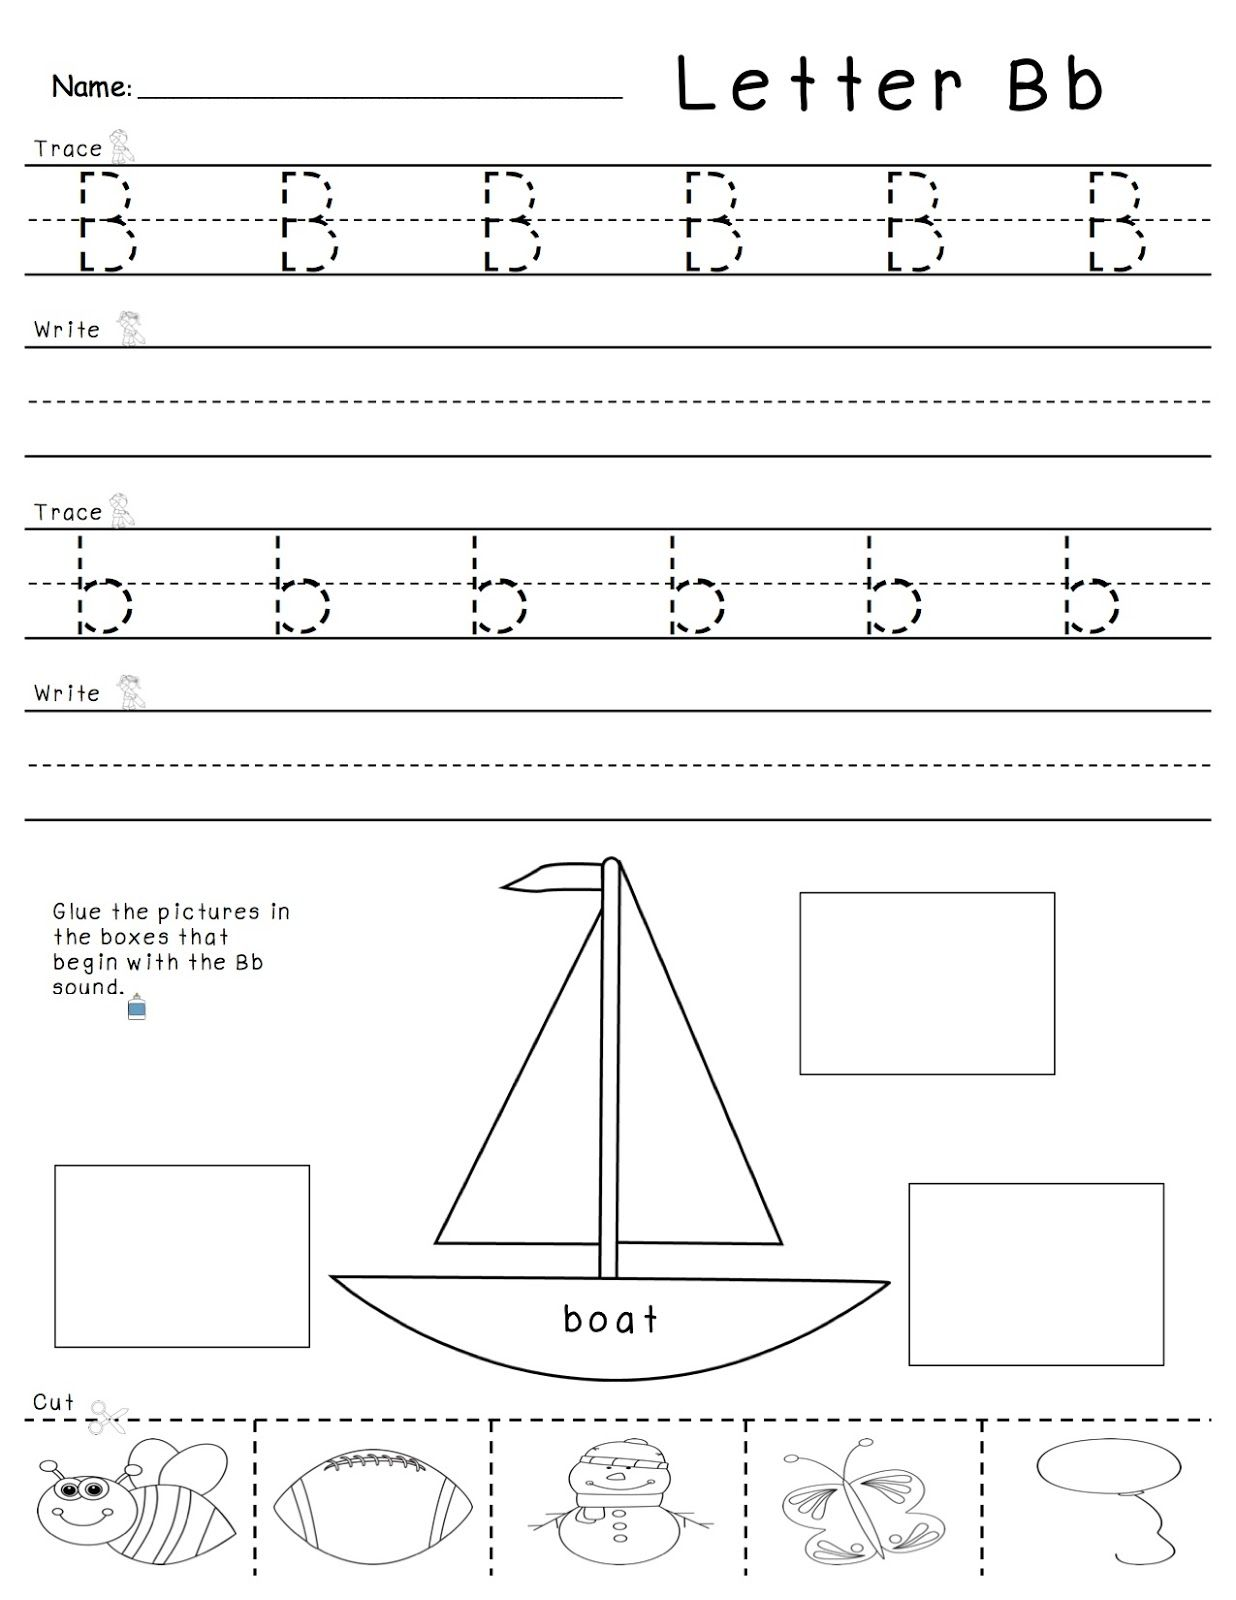 Letter and Letter Sounds Practice! Letter sounds